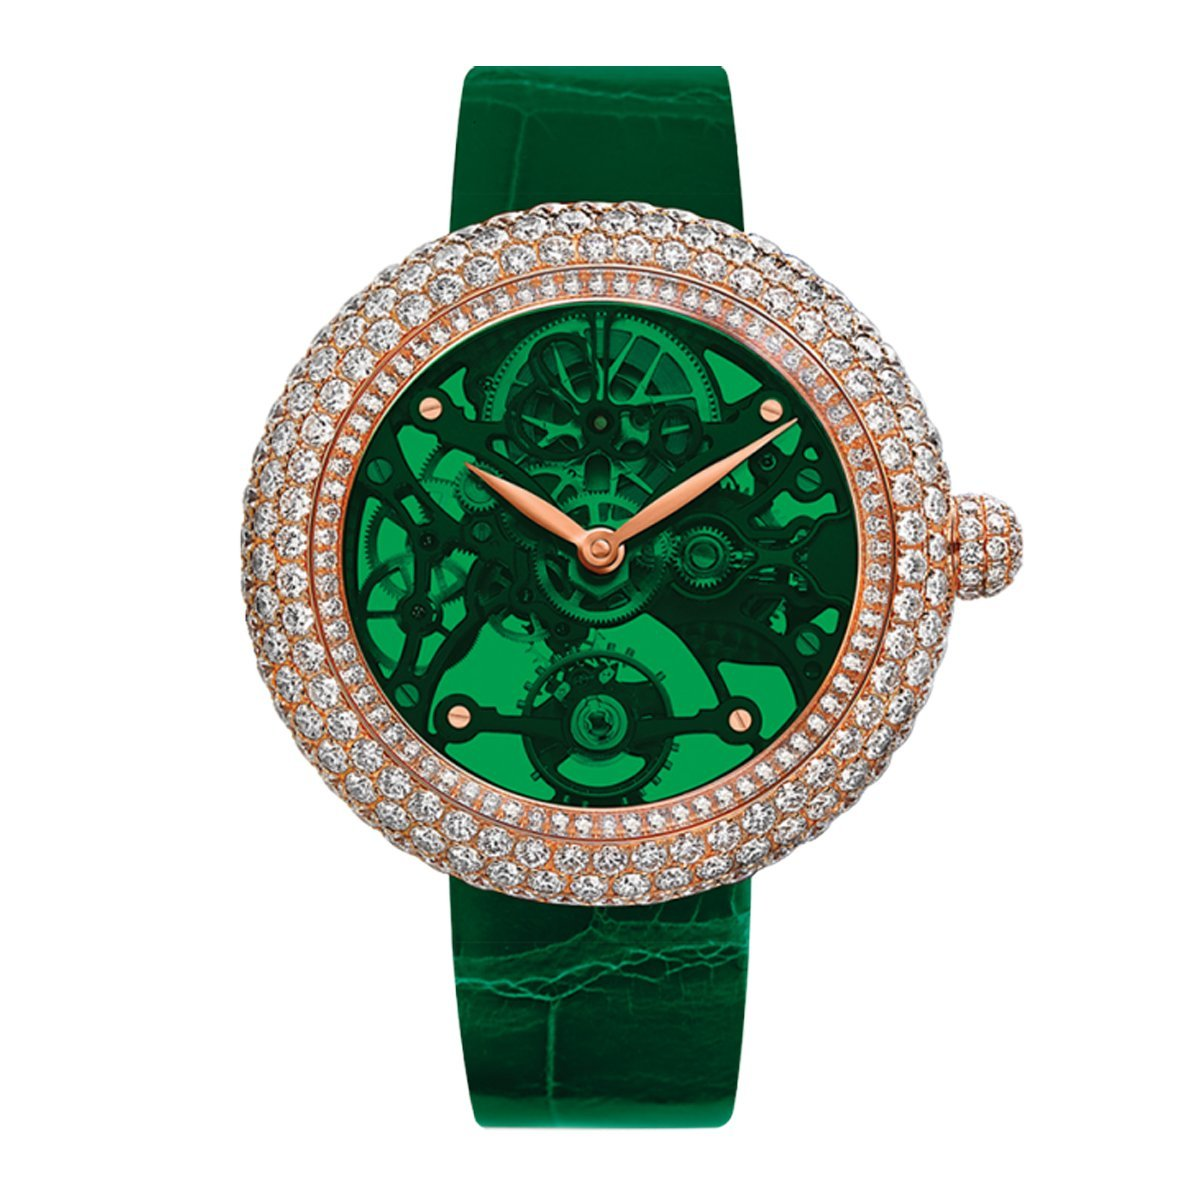 Jacob & Co. Brilliant Skeleton Northern Lights Green - Watches & Crystals